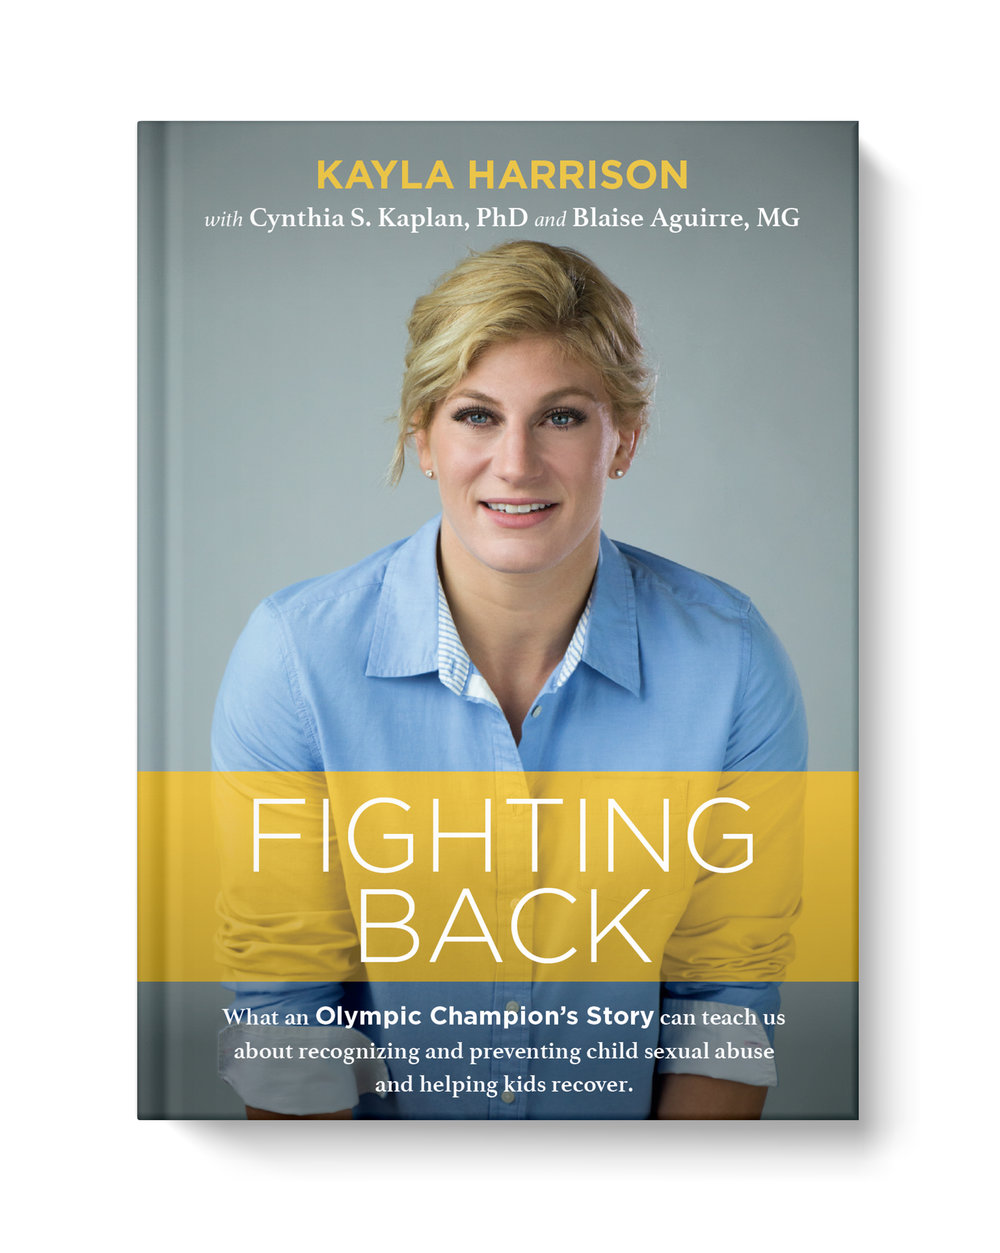 Kayla_Fighting_Back_Book_Cover_2_Comp.jpg